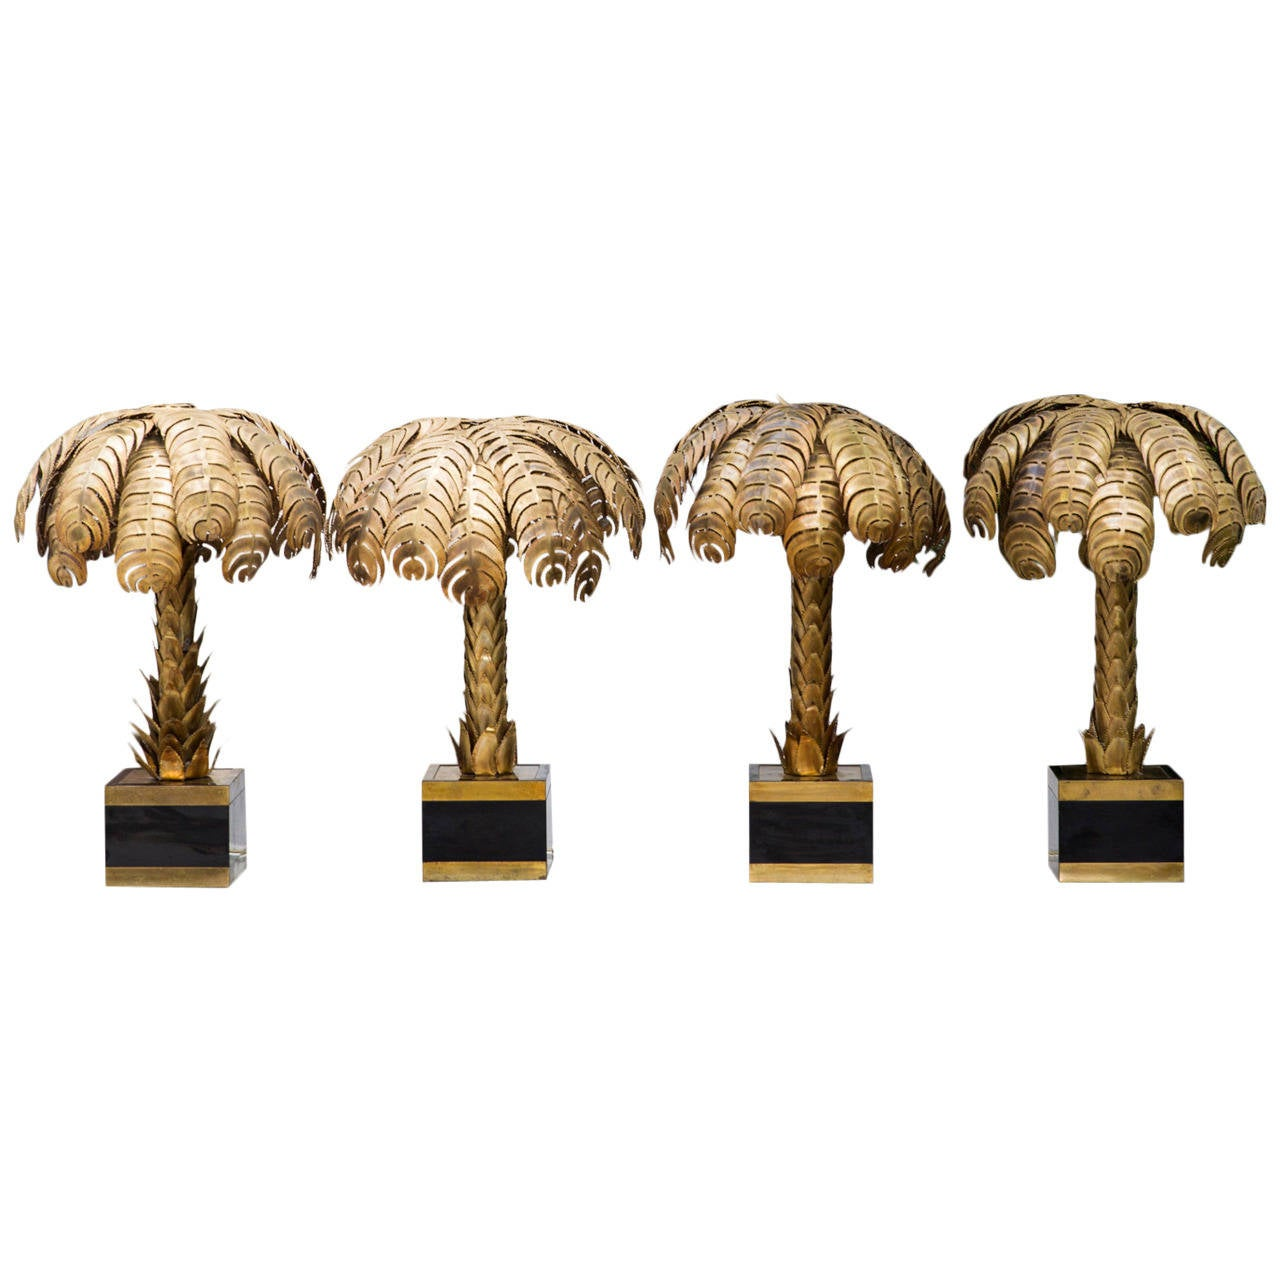 Set of four palm tree table lamps by maison jansen at 1stdibs set of four palm tree table lamps by maison jansen 1 geotapseo Image collections